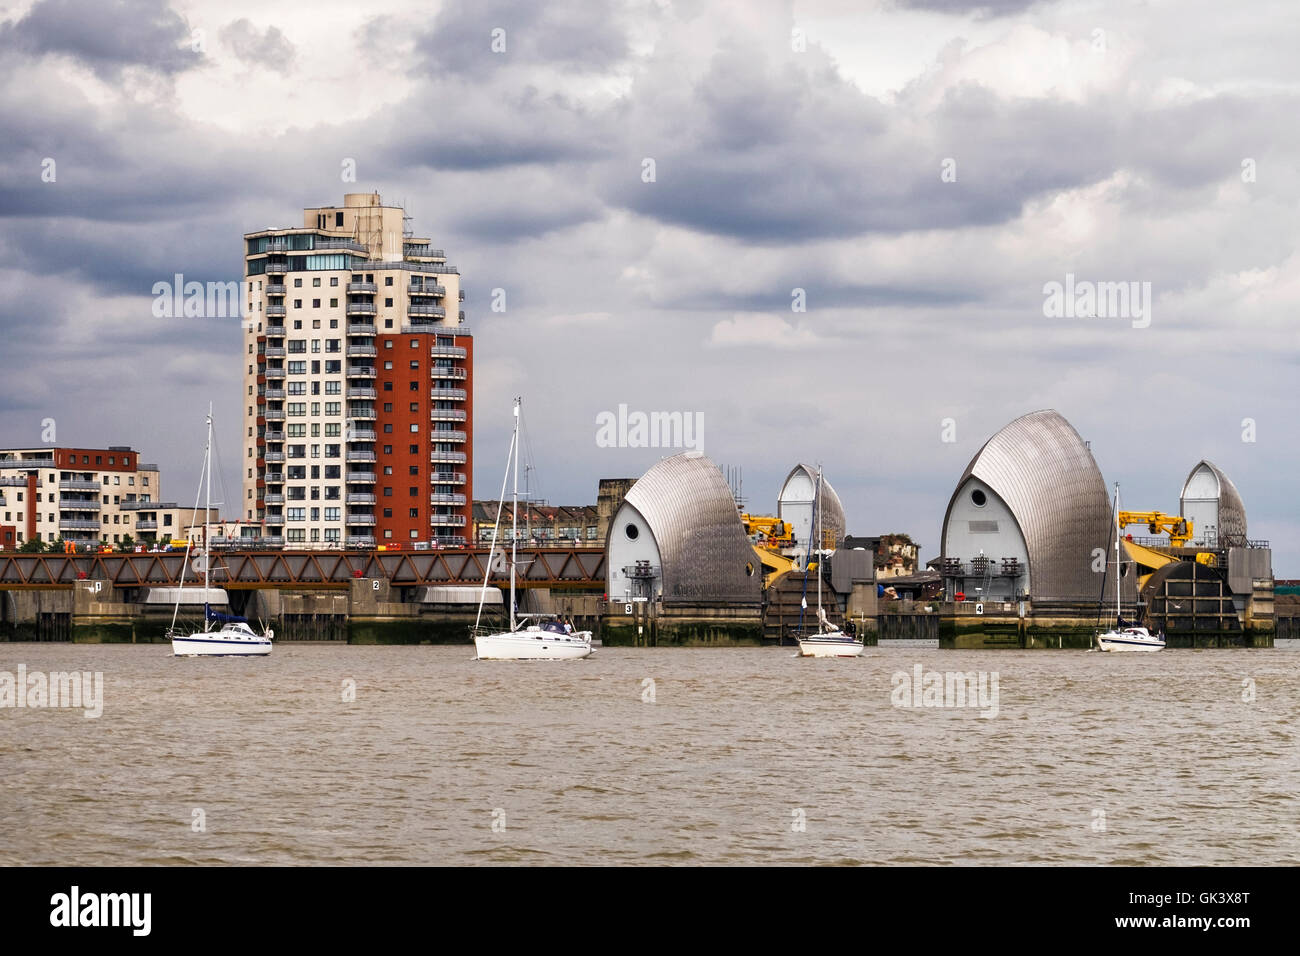 London. Yachts pass through open Thames Barrier under dramatic cloudy black sky and threatening storm clouds - Stock Image